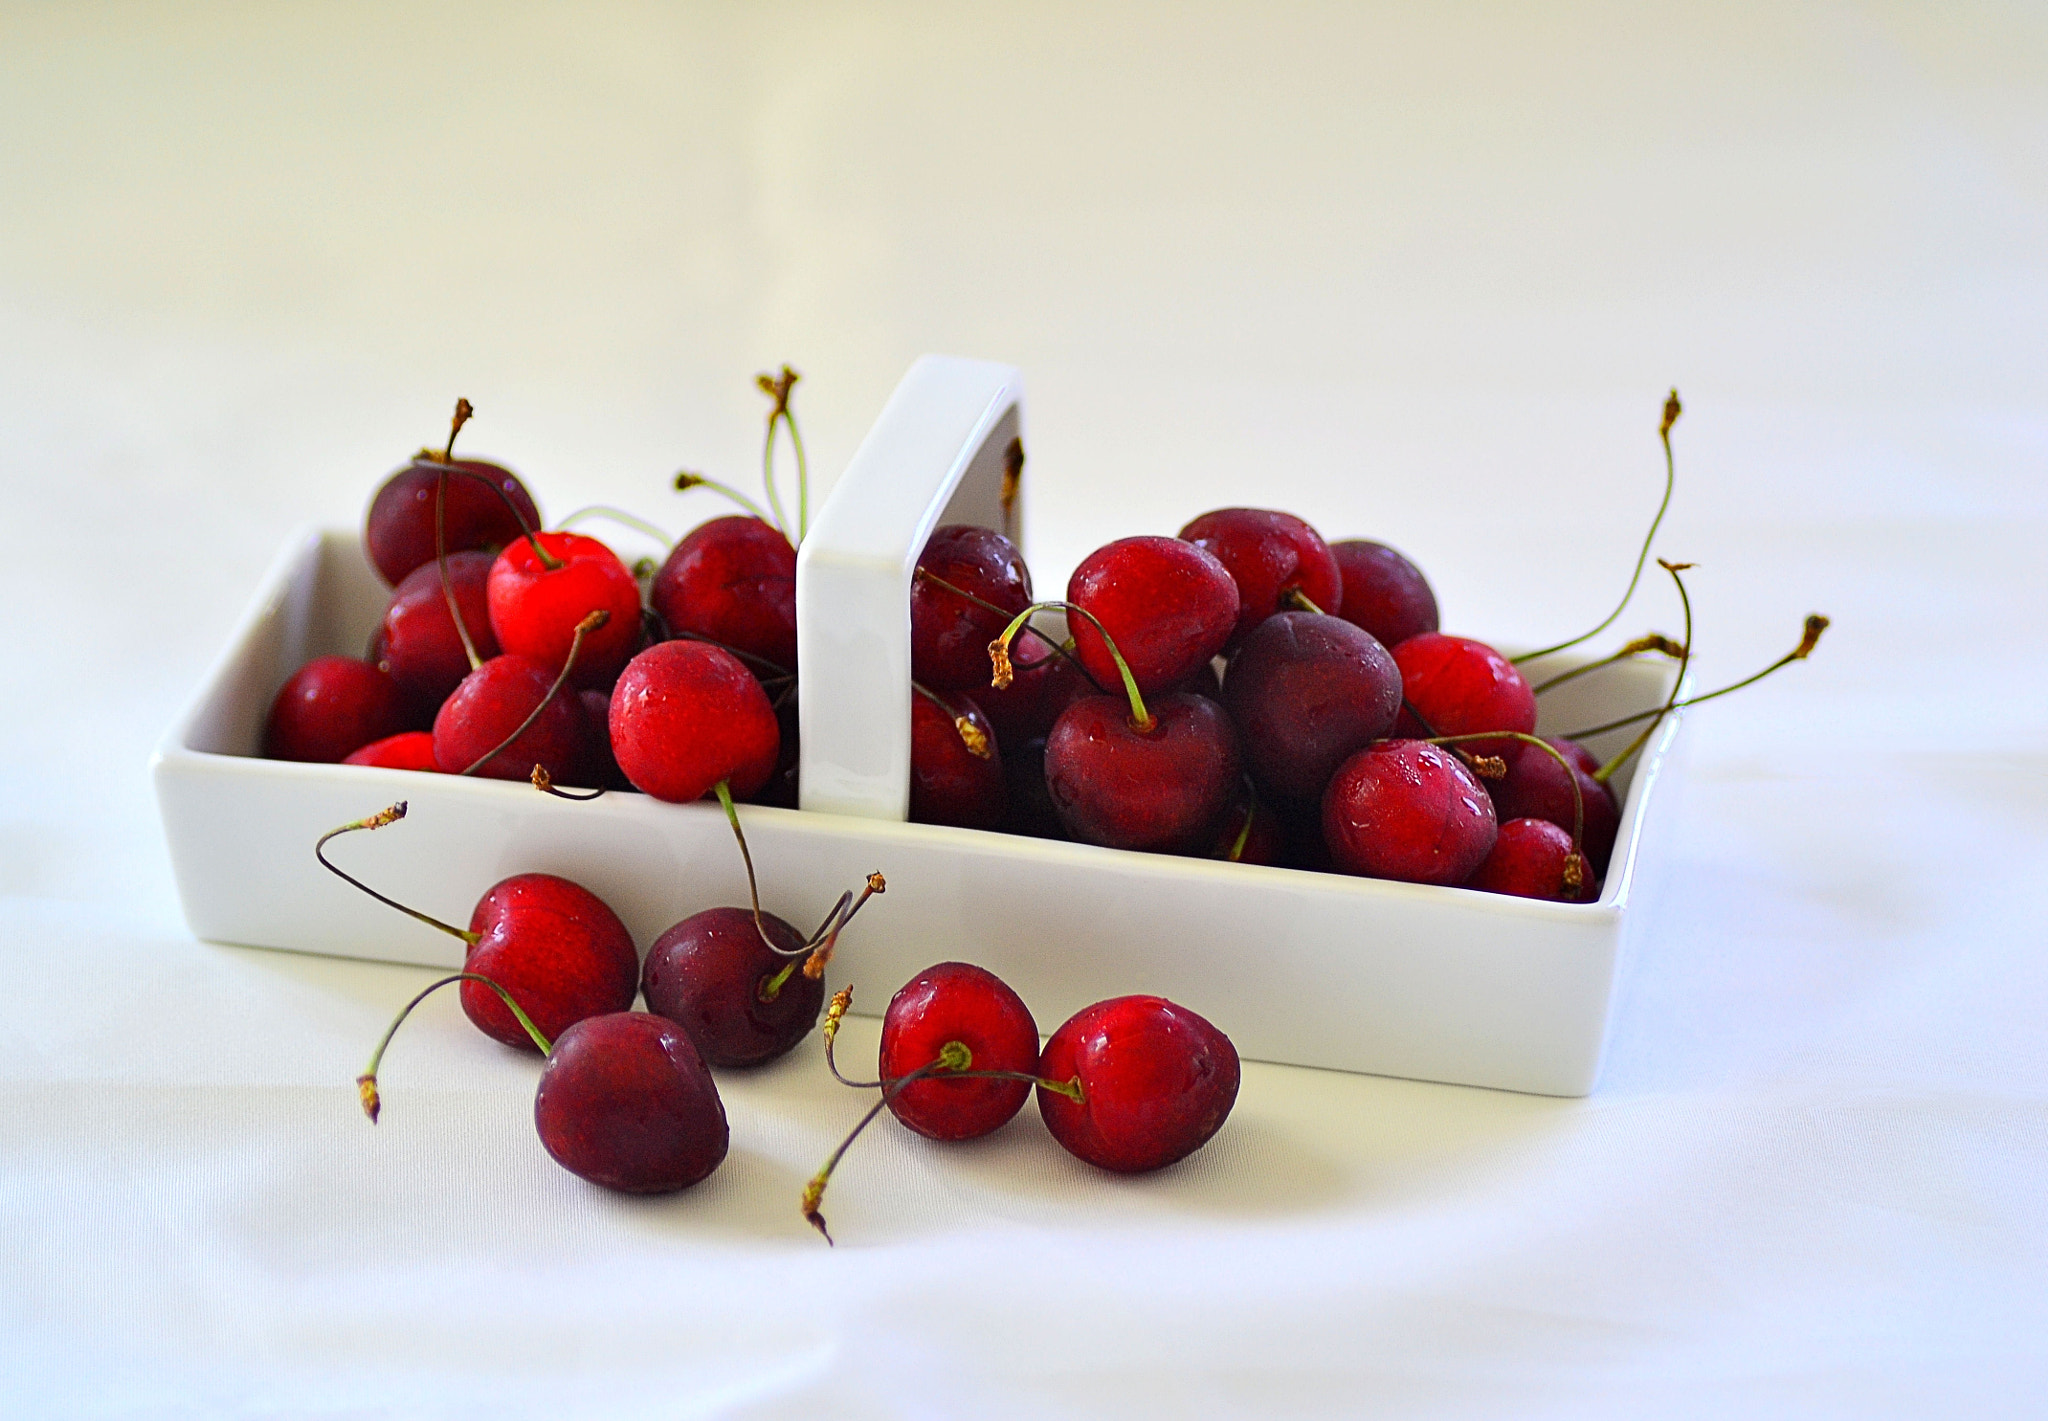 Photograph Cherries by Zeynep Ugurdag on 500px